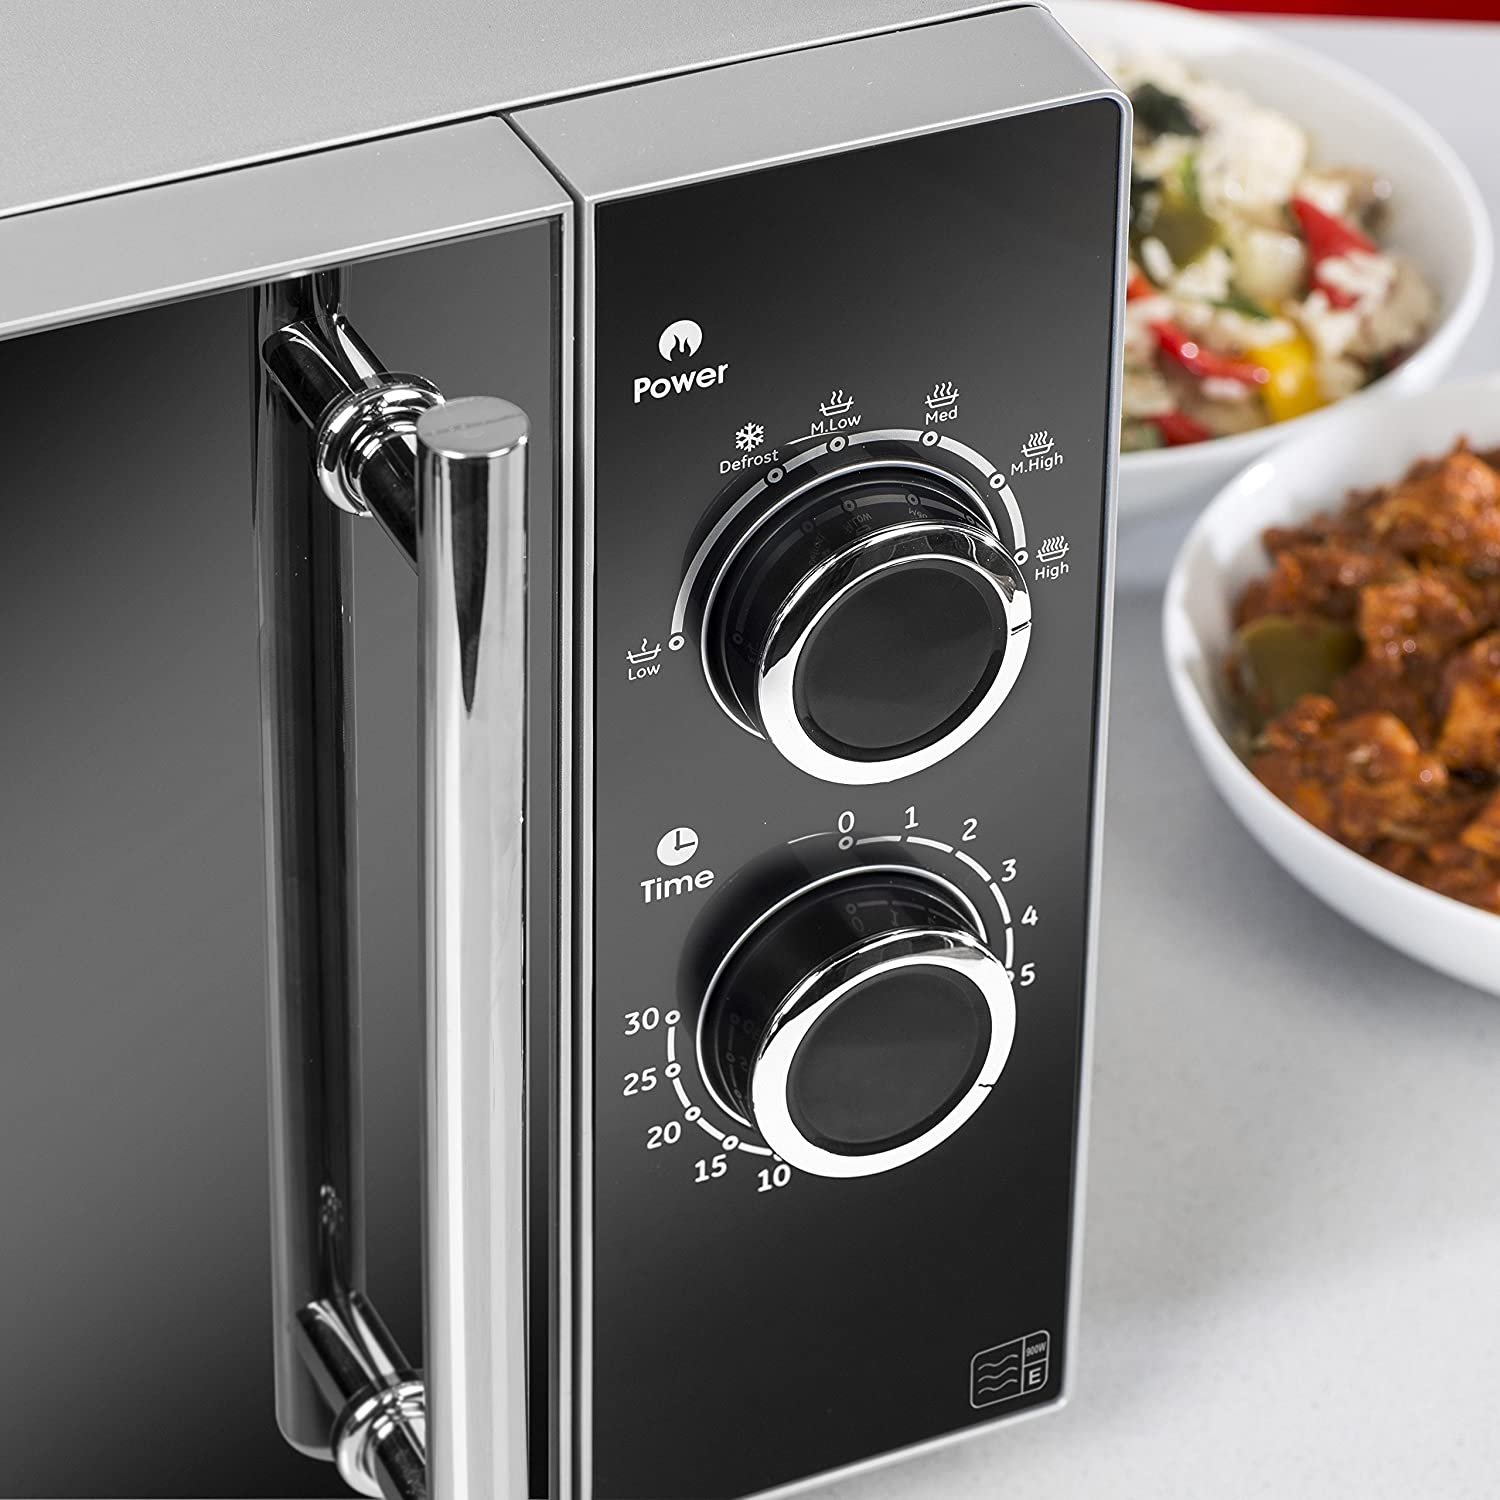 Tower T24003 Digital Combi Microwave with Grill, 1000 W, 23 Litre, Gloss Black